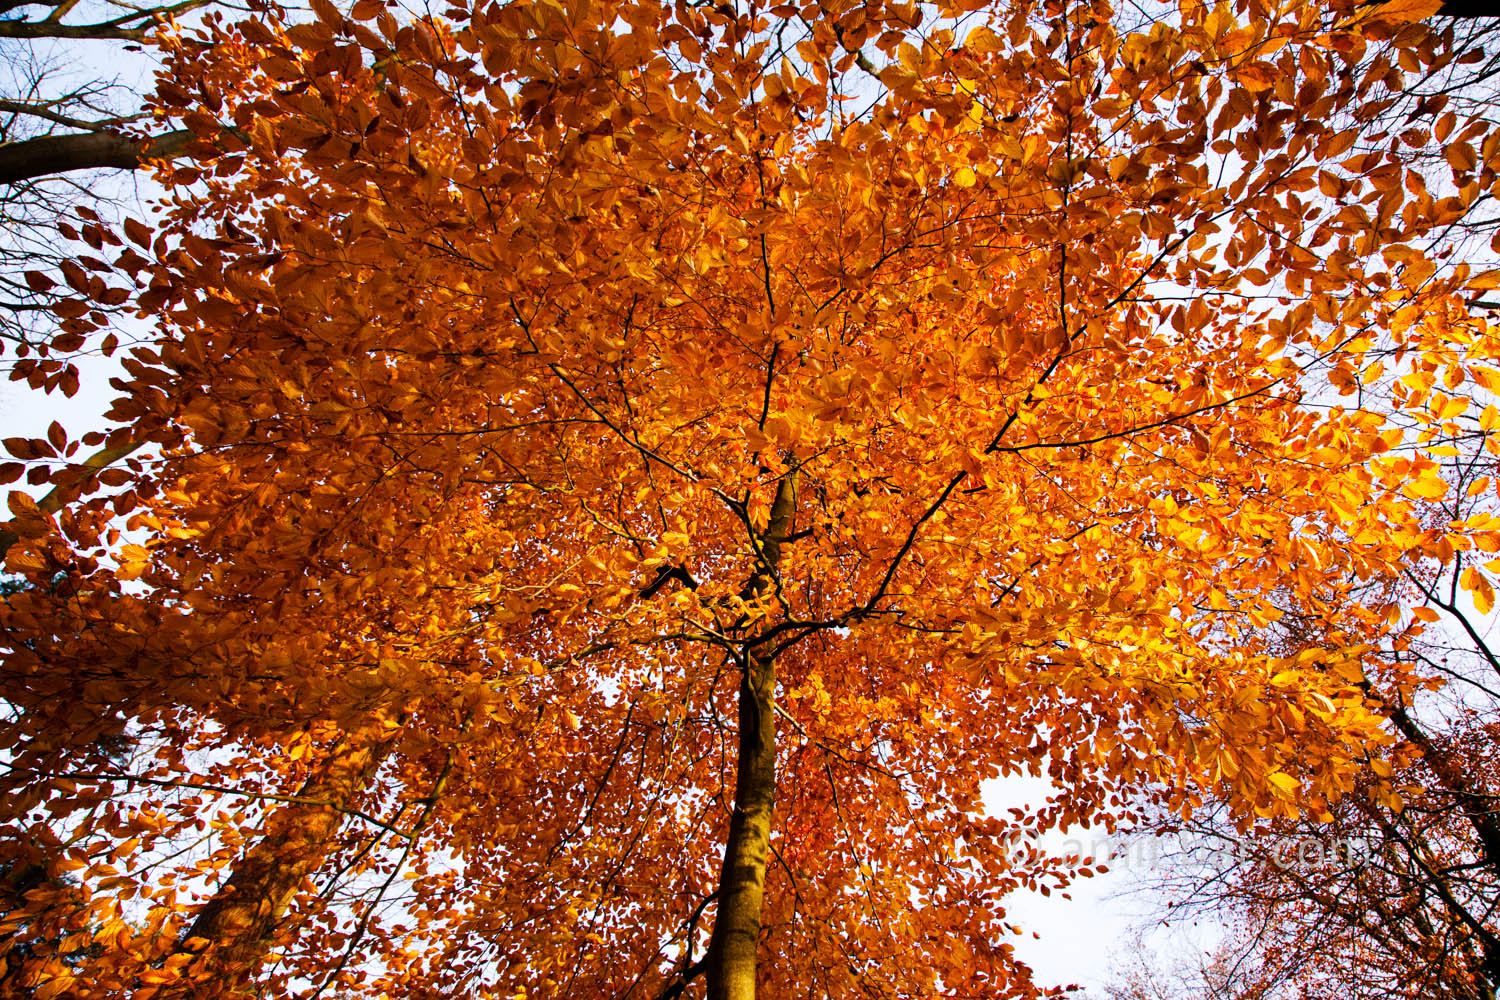 Autumn leaves XI: Automn leaves in De Achterhoek, The Netherlands